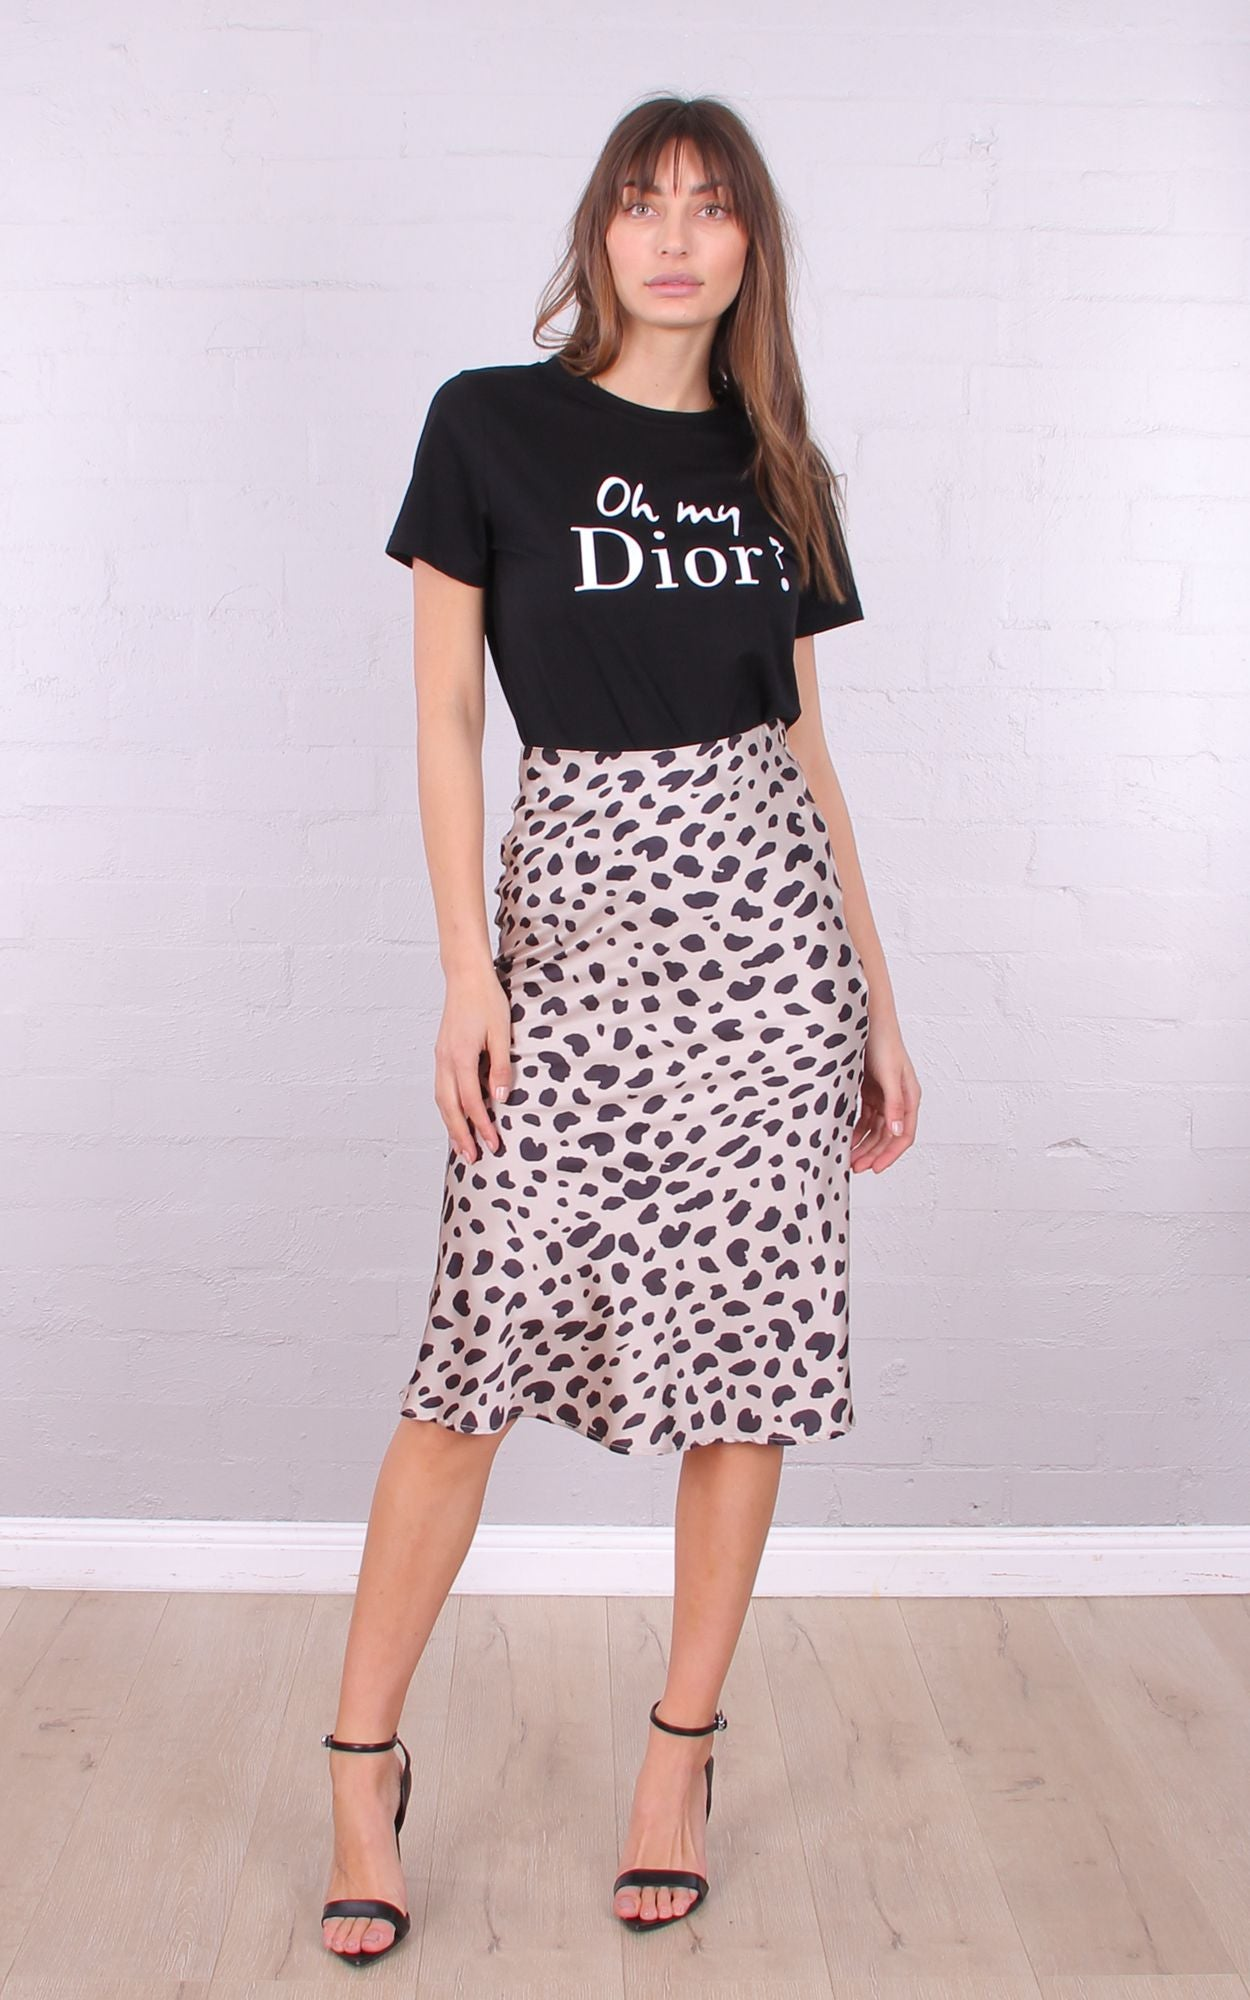 dbe58a3cc1fc9a Oh my Dior! Tee- Black - My Girl Lollipop Boutique